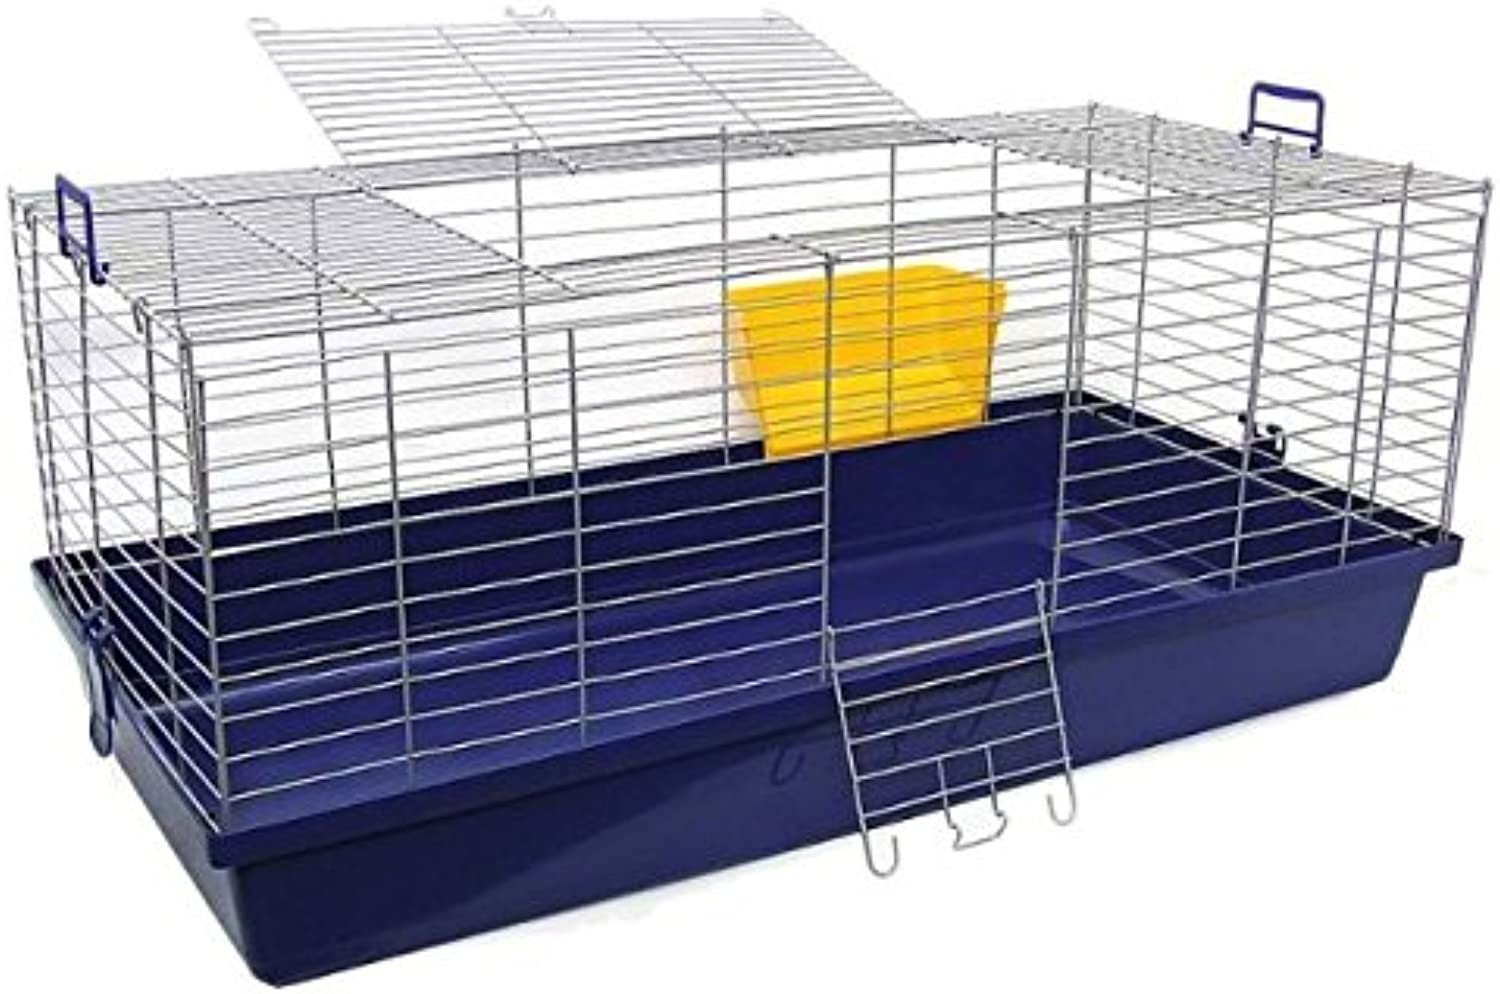 Robust Rabbit And Guinea Pig Cage 100 A Classic Home For Small Pets Like Guinea Pigs And Dwarf Rabbits